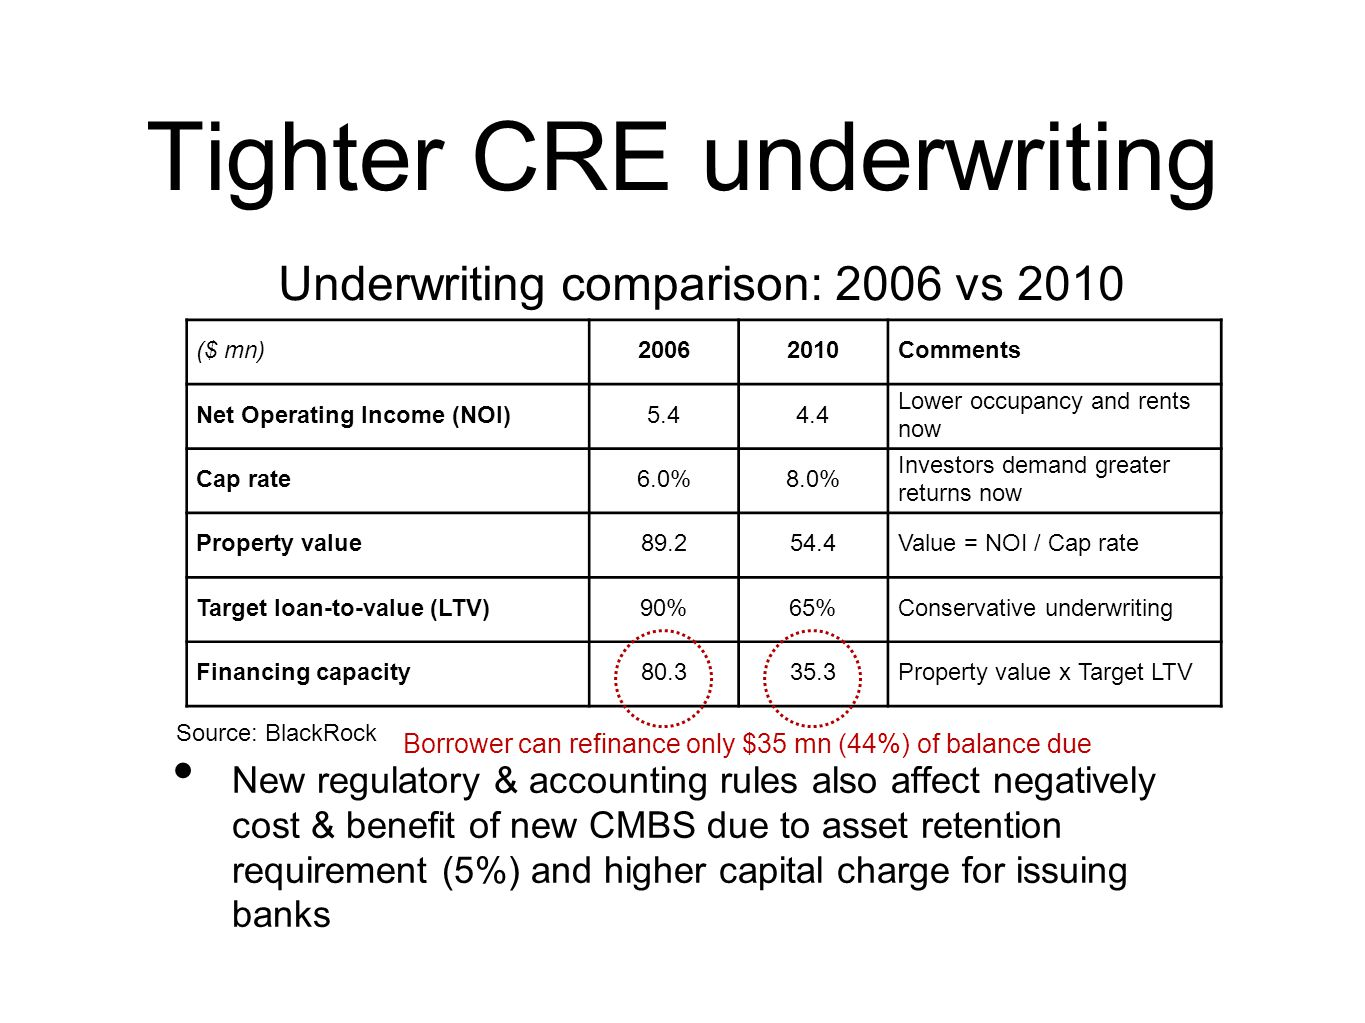 Tighter CRE underwriting New regulatory & accounting rules also affect negatively cost & benefit of new CMBS due to asset retention requirement (5%) a